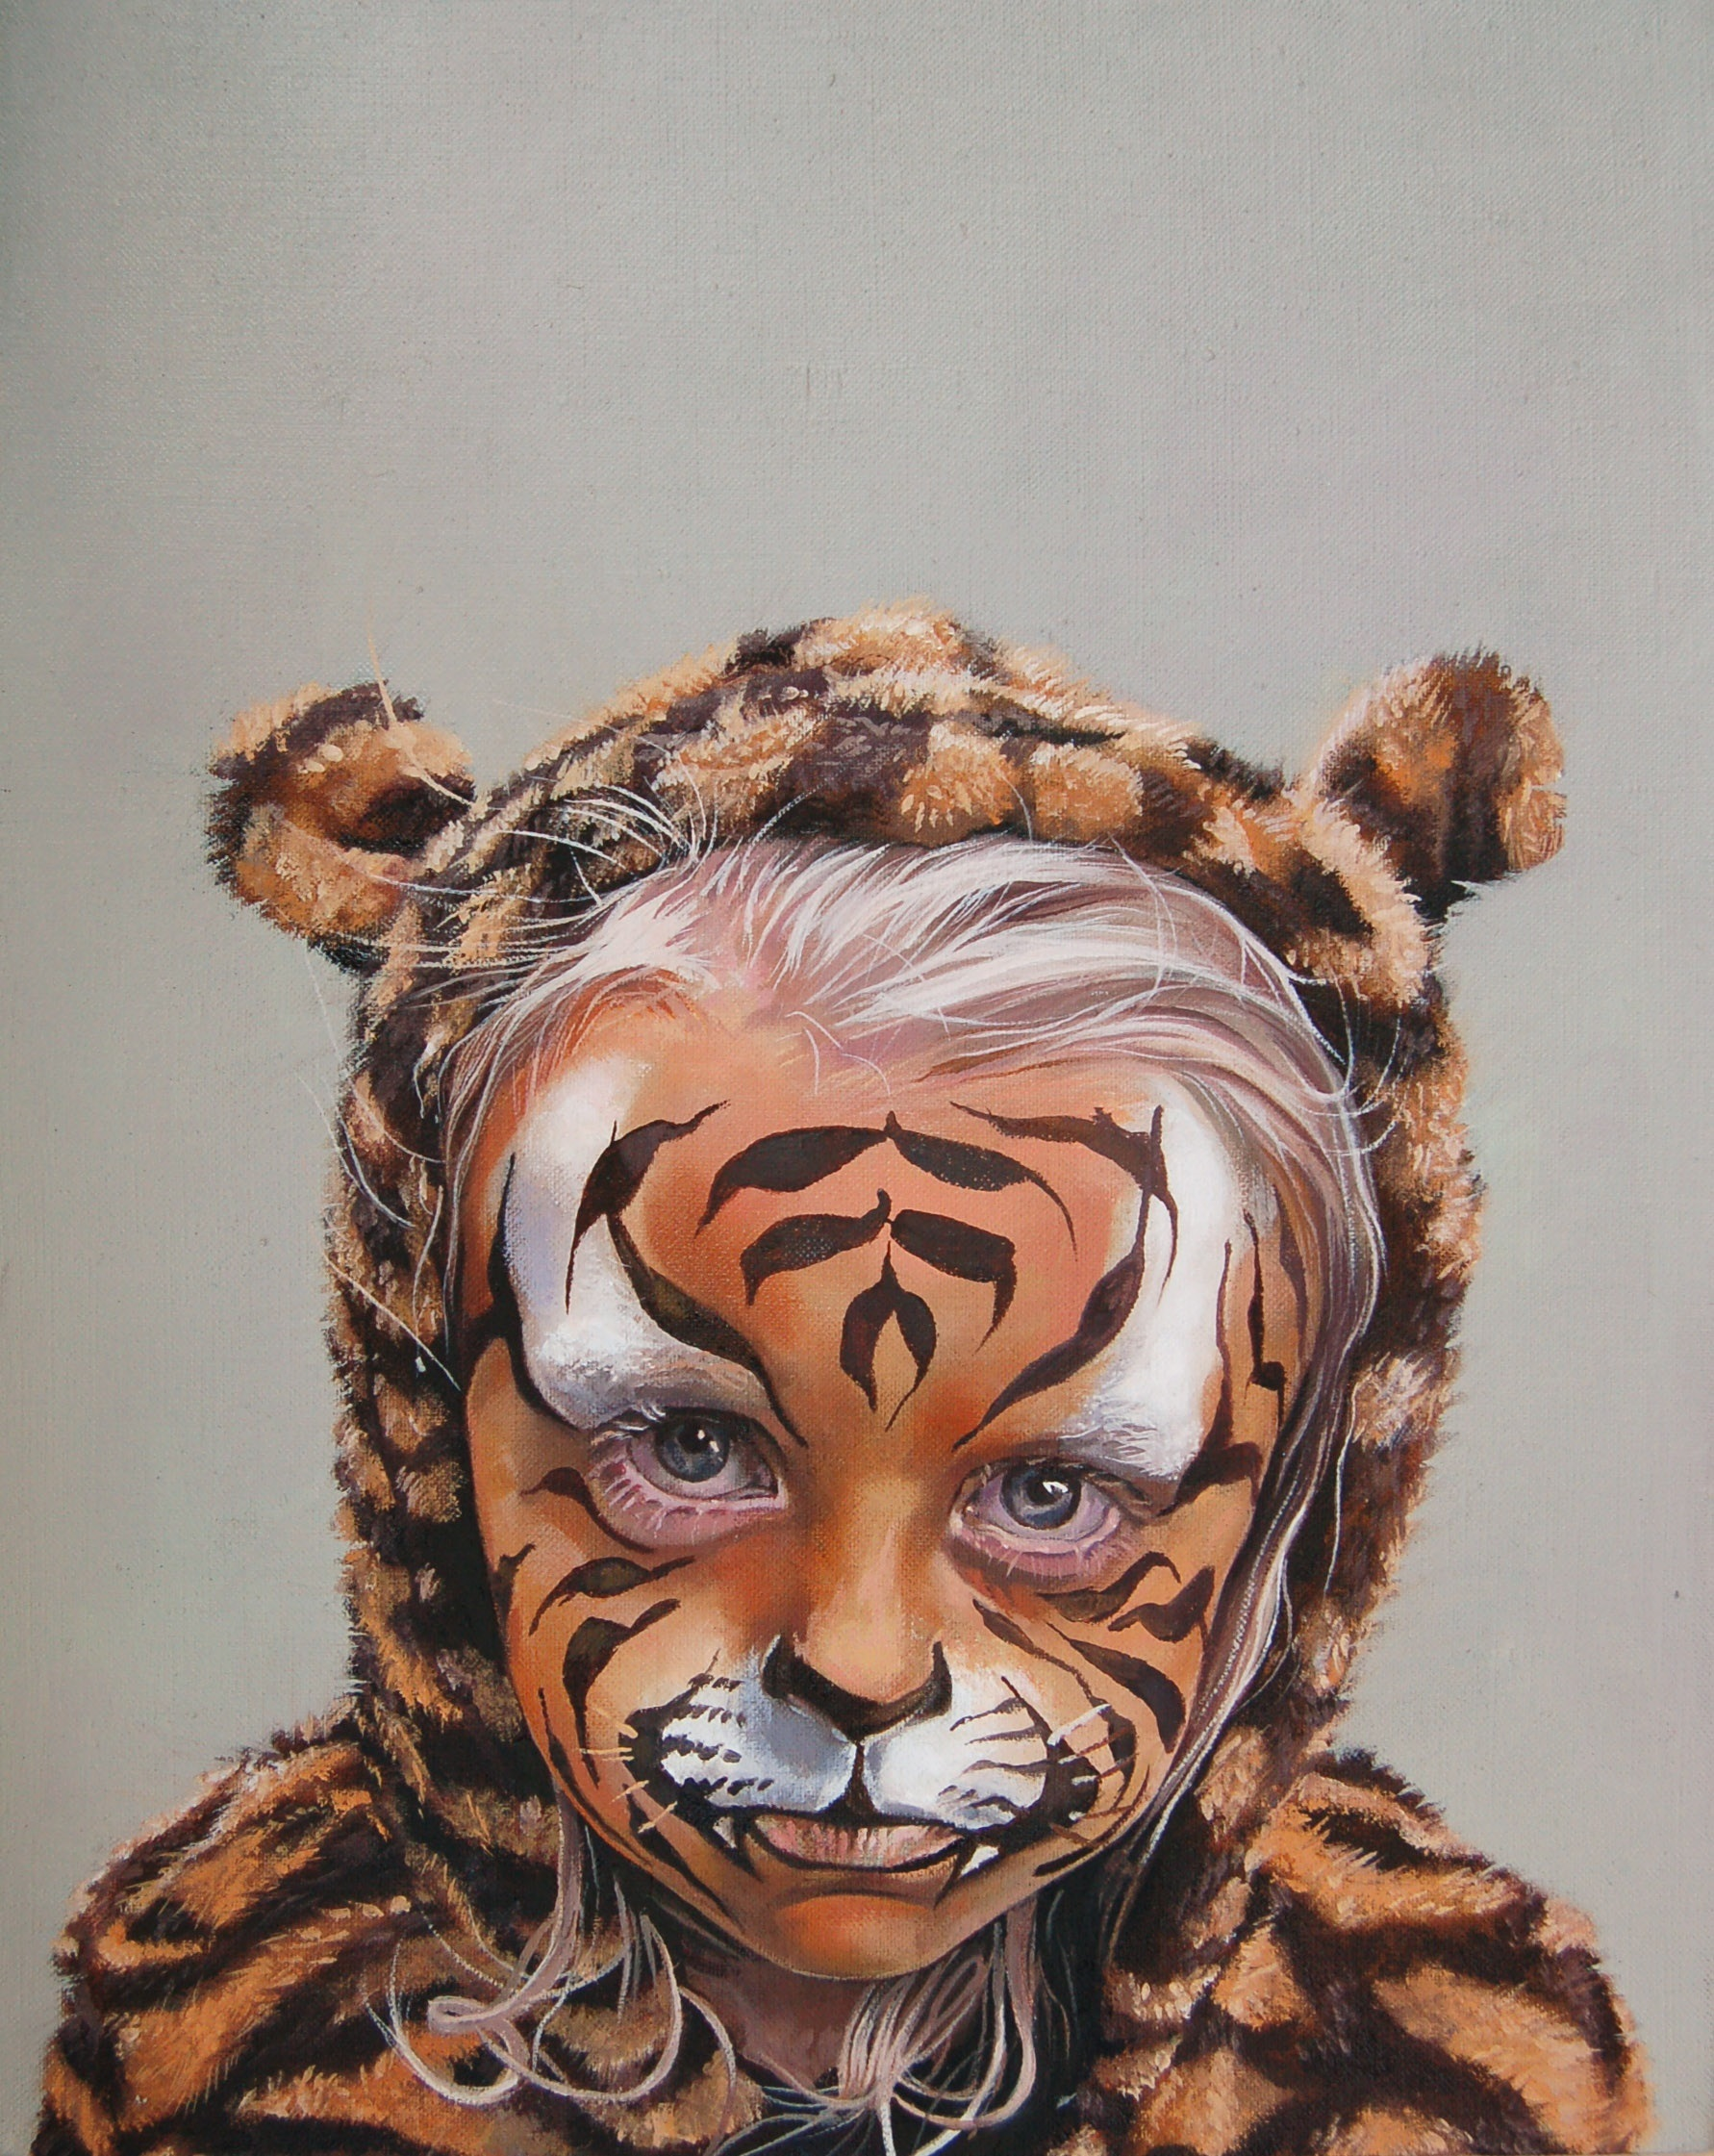 Behind the Tiger Paint Catherine MacDiarmid Oil on linen, 25 cm x 20 cm